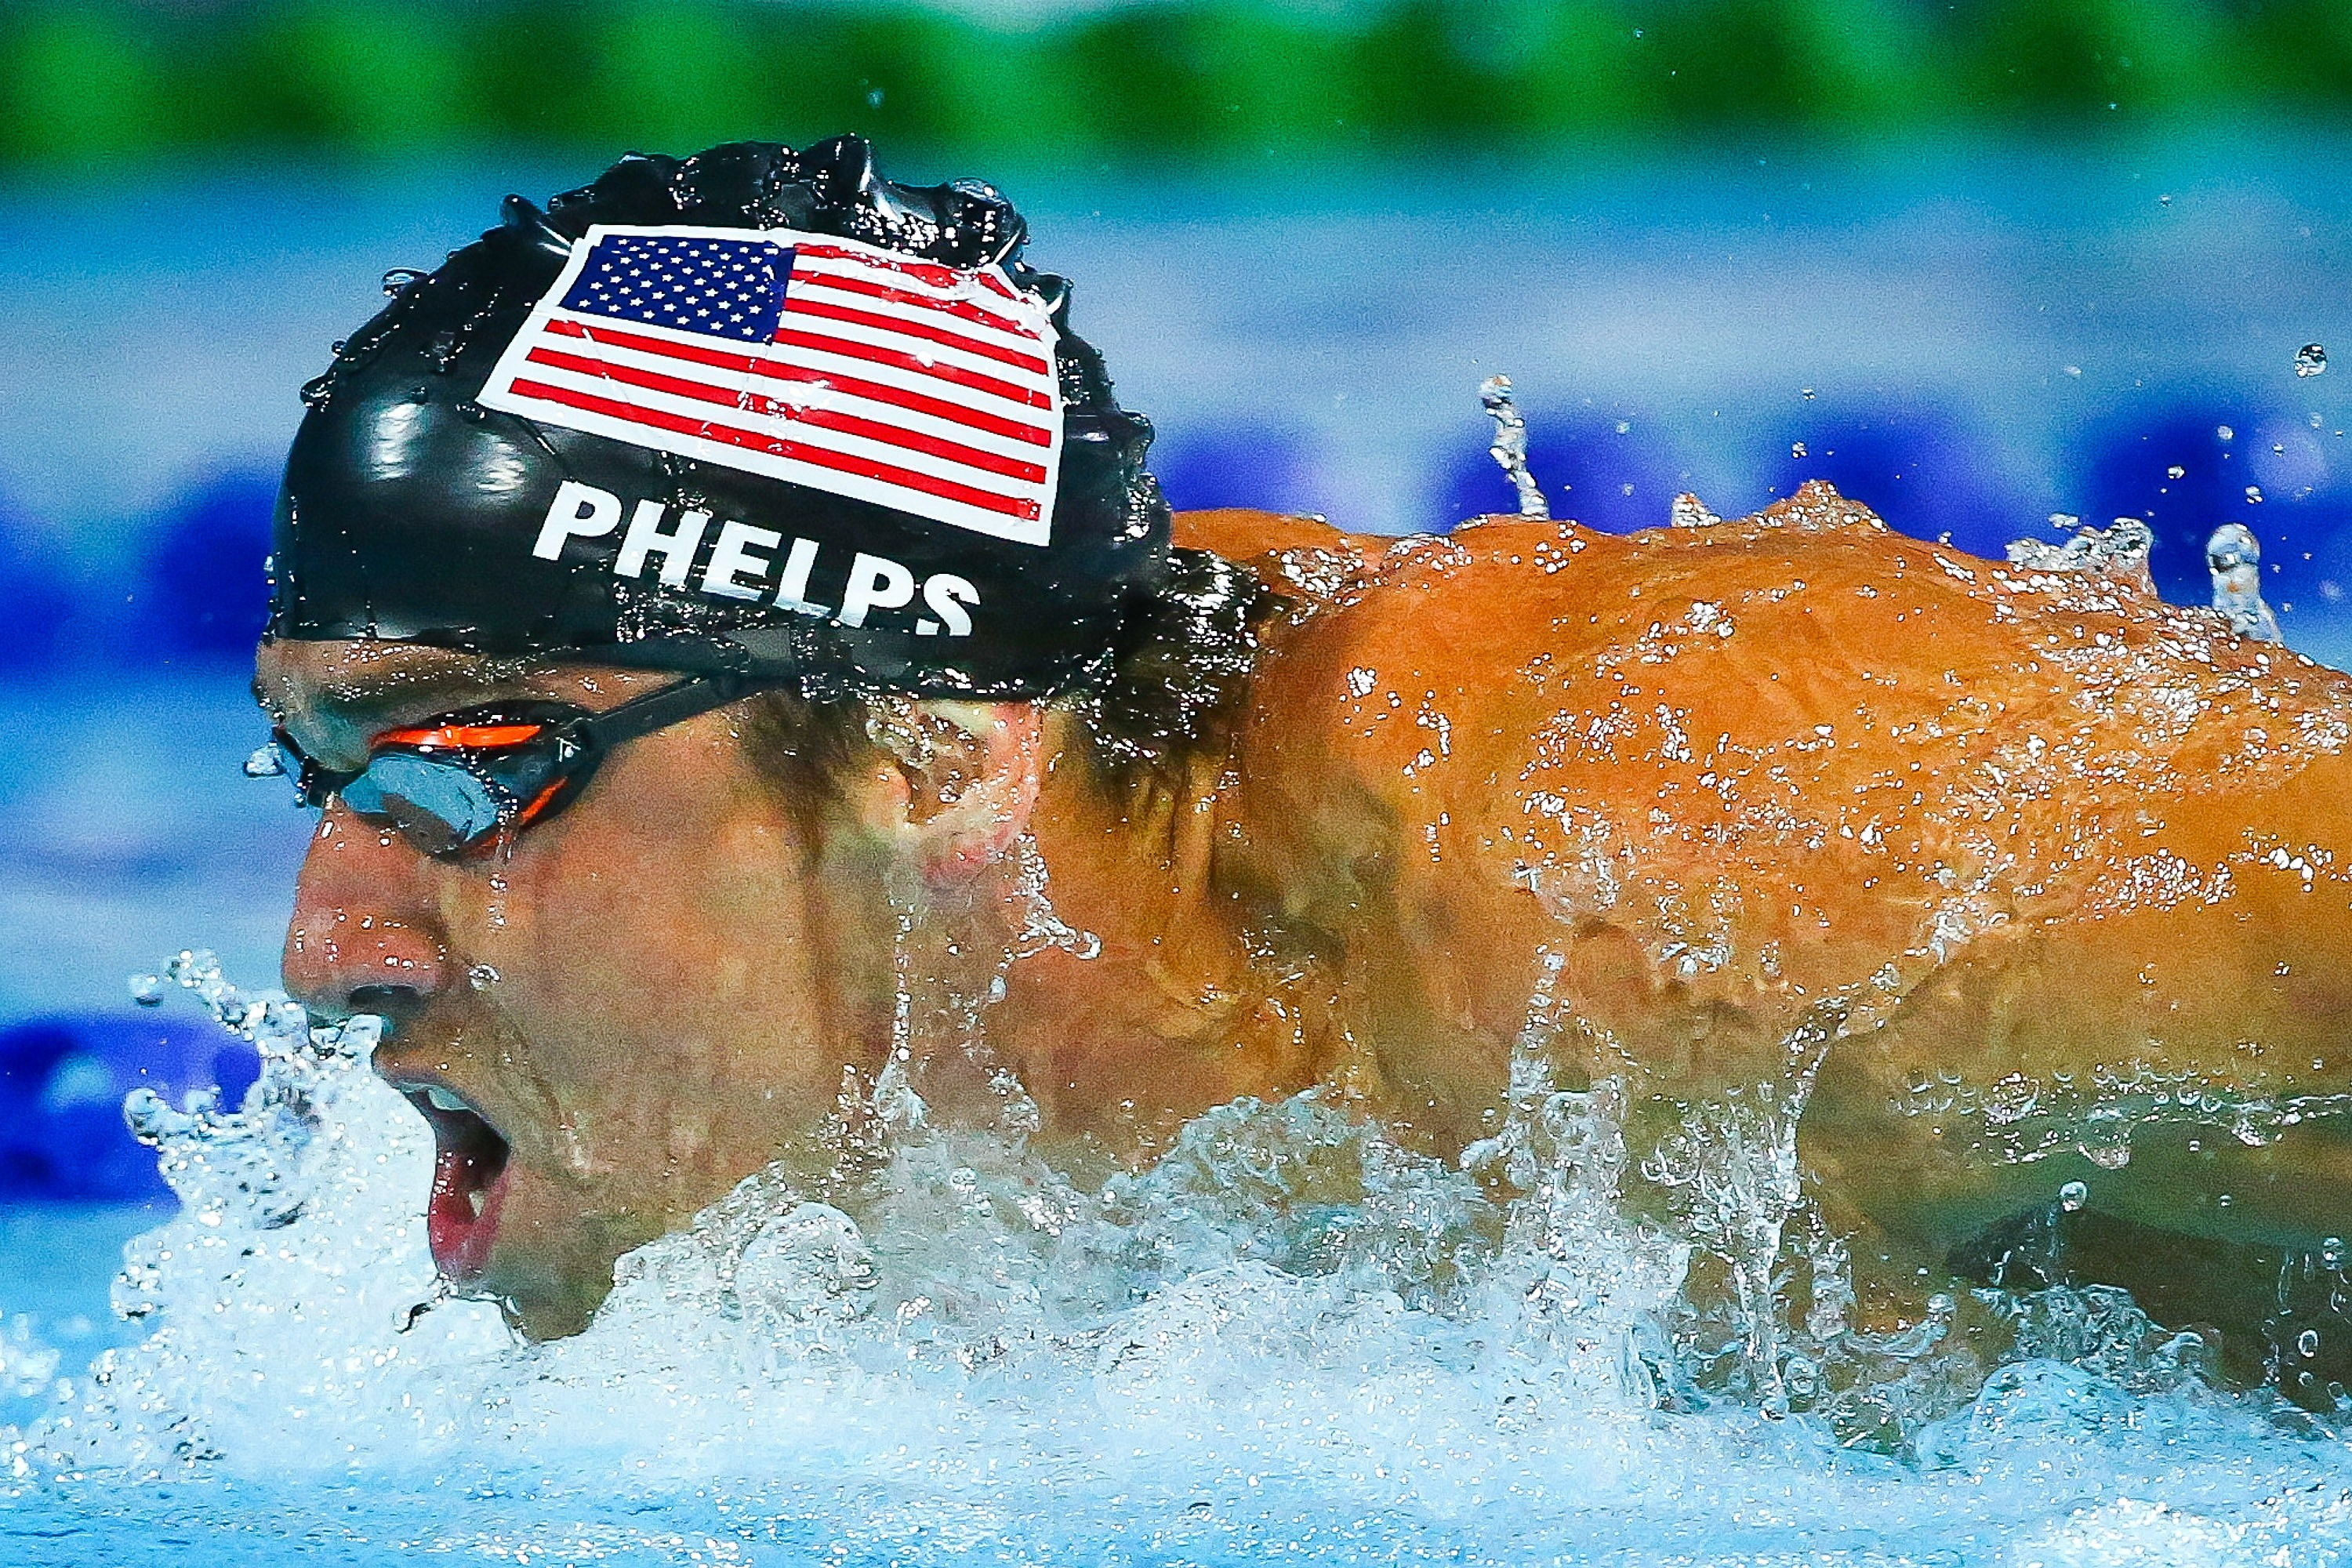 American swimmer Michael Phelps competes during the men's 4 x 100m individual medley final in  Gold Coast, Australia, on Aug. 24, 2014